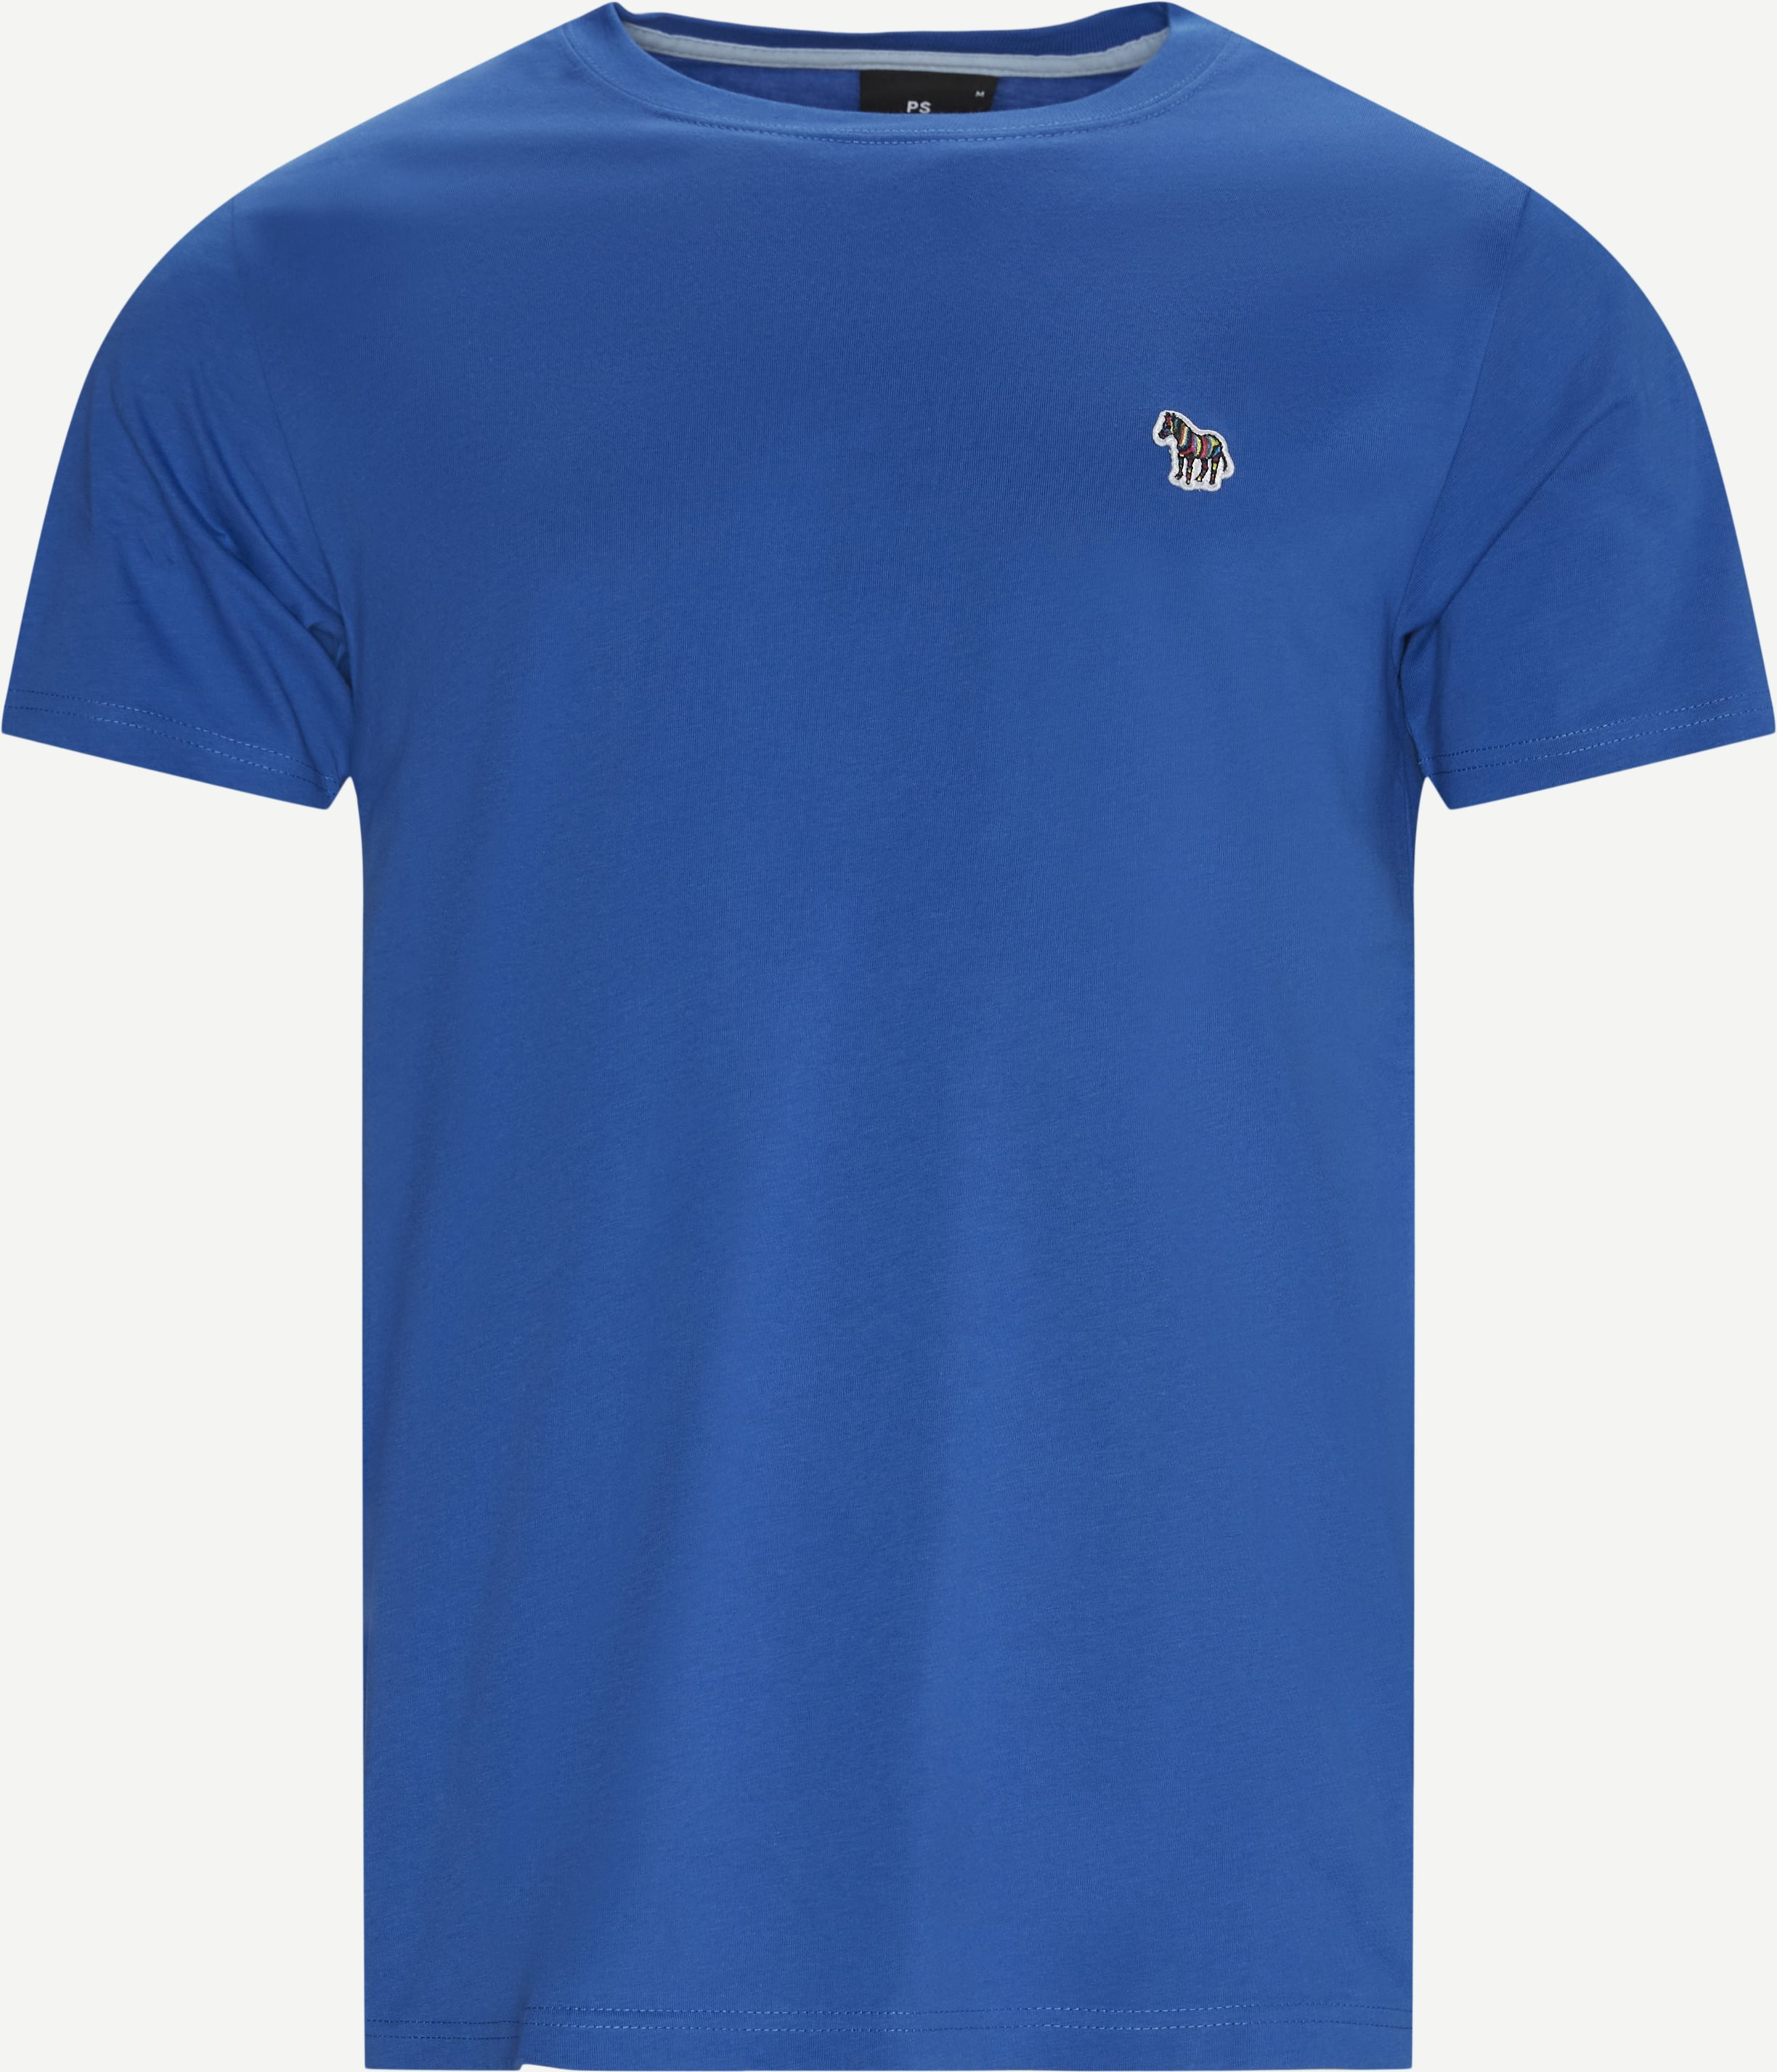 Logo T-shirt - T-shirts - Regular - Blue